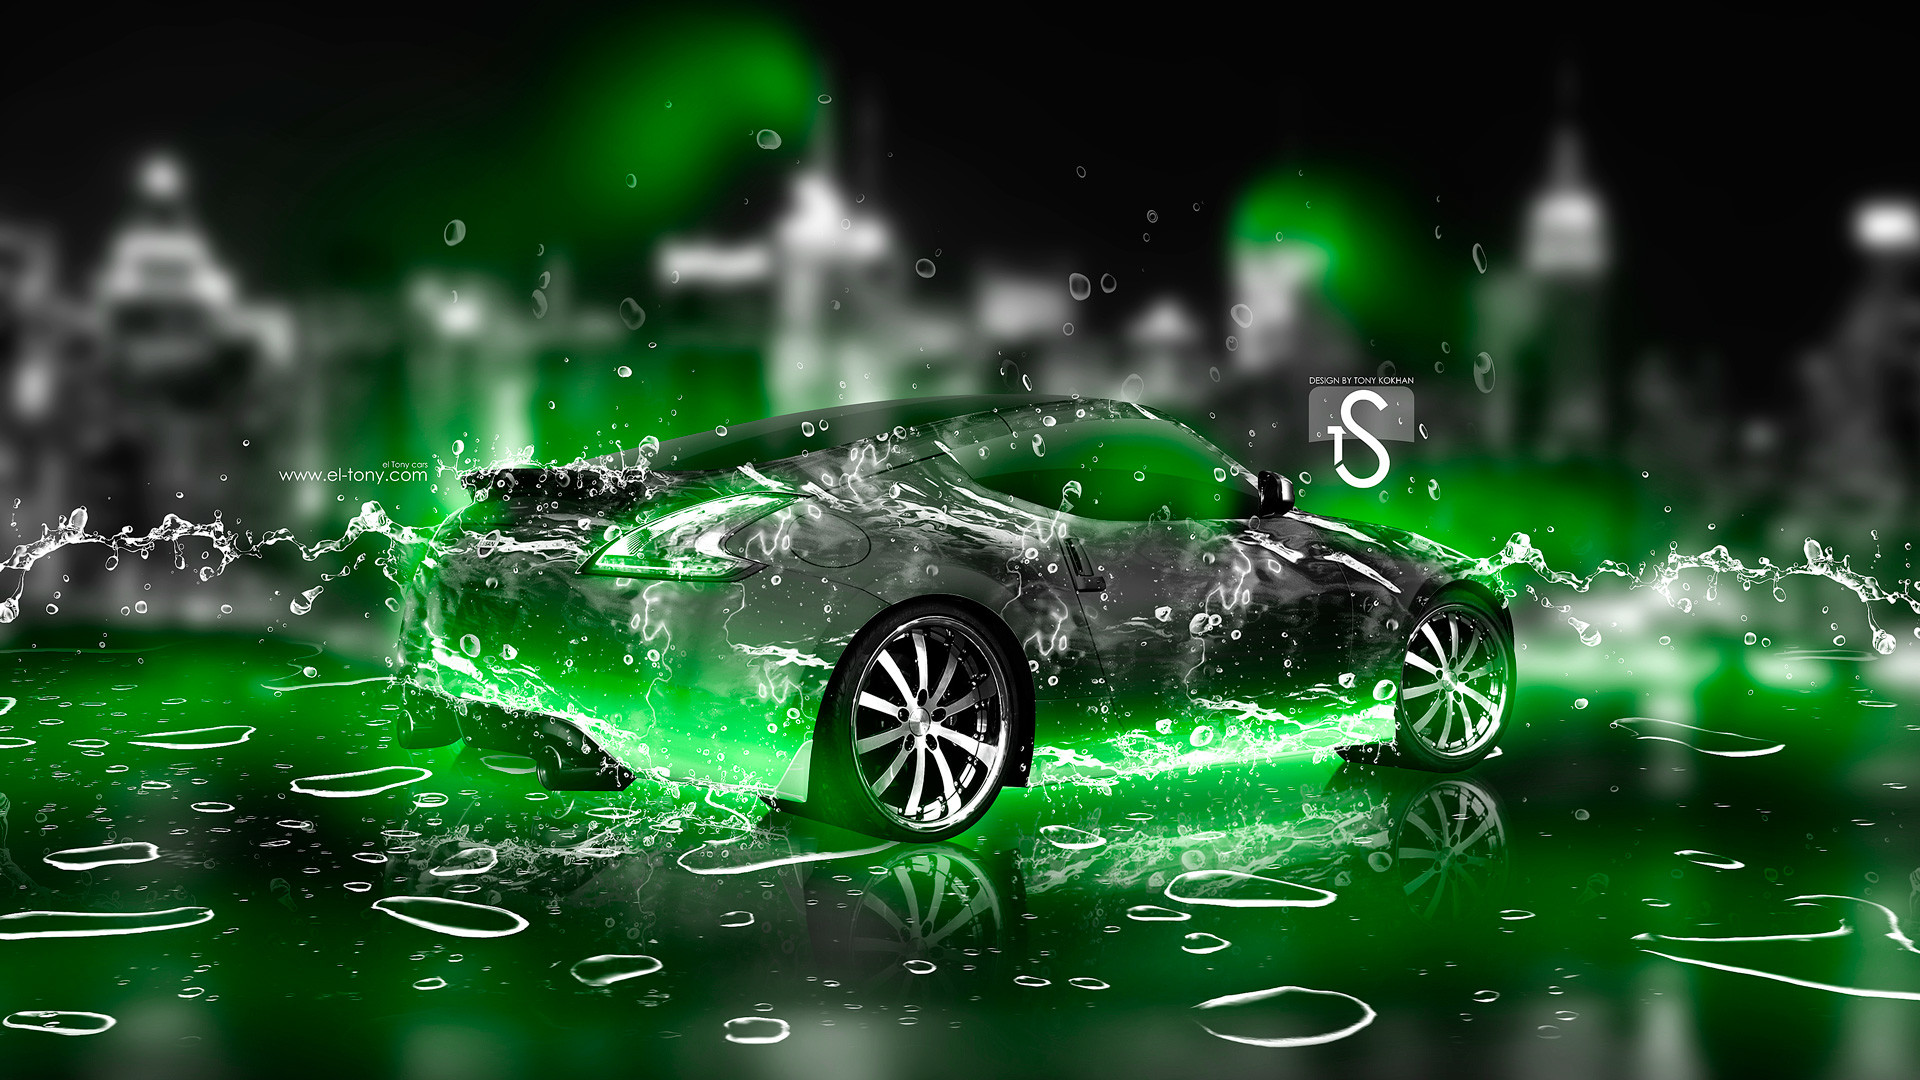 1920x1080 Nissan 370Z Ice Water City Car 2013 Green Neon HD Wallpapers design by